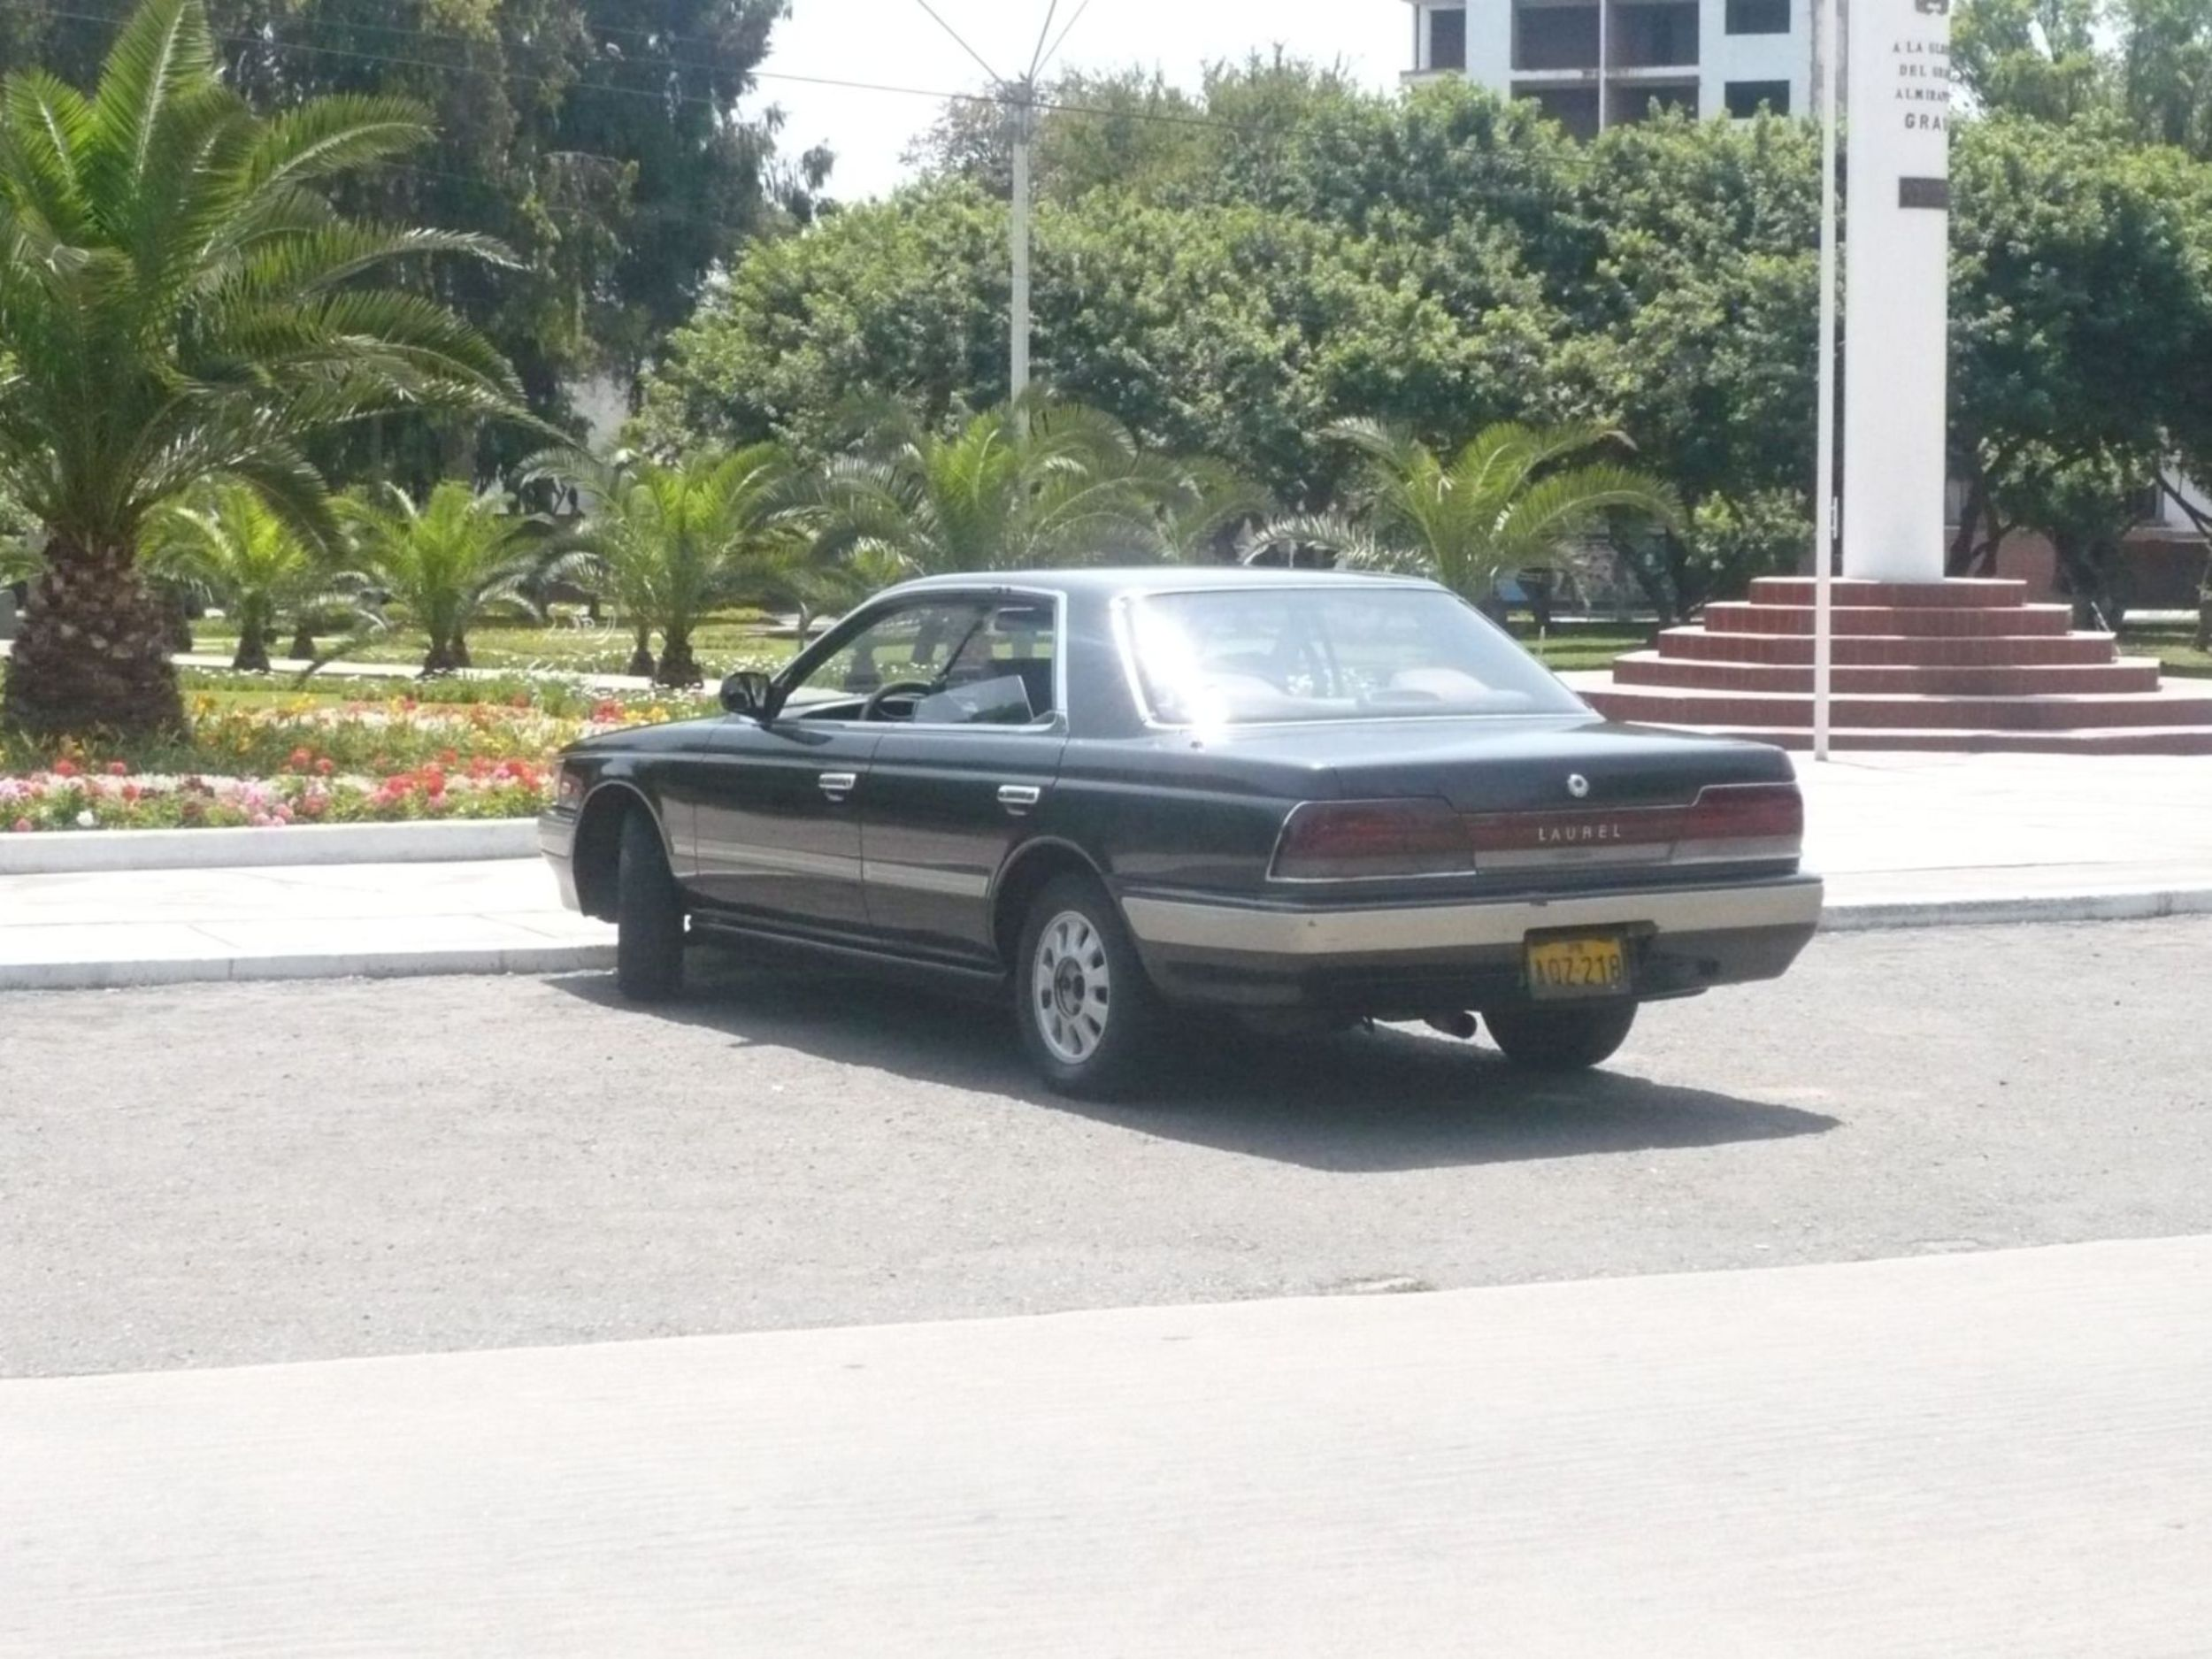 1992 Nissan Laurel #4